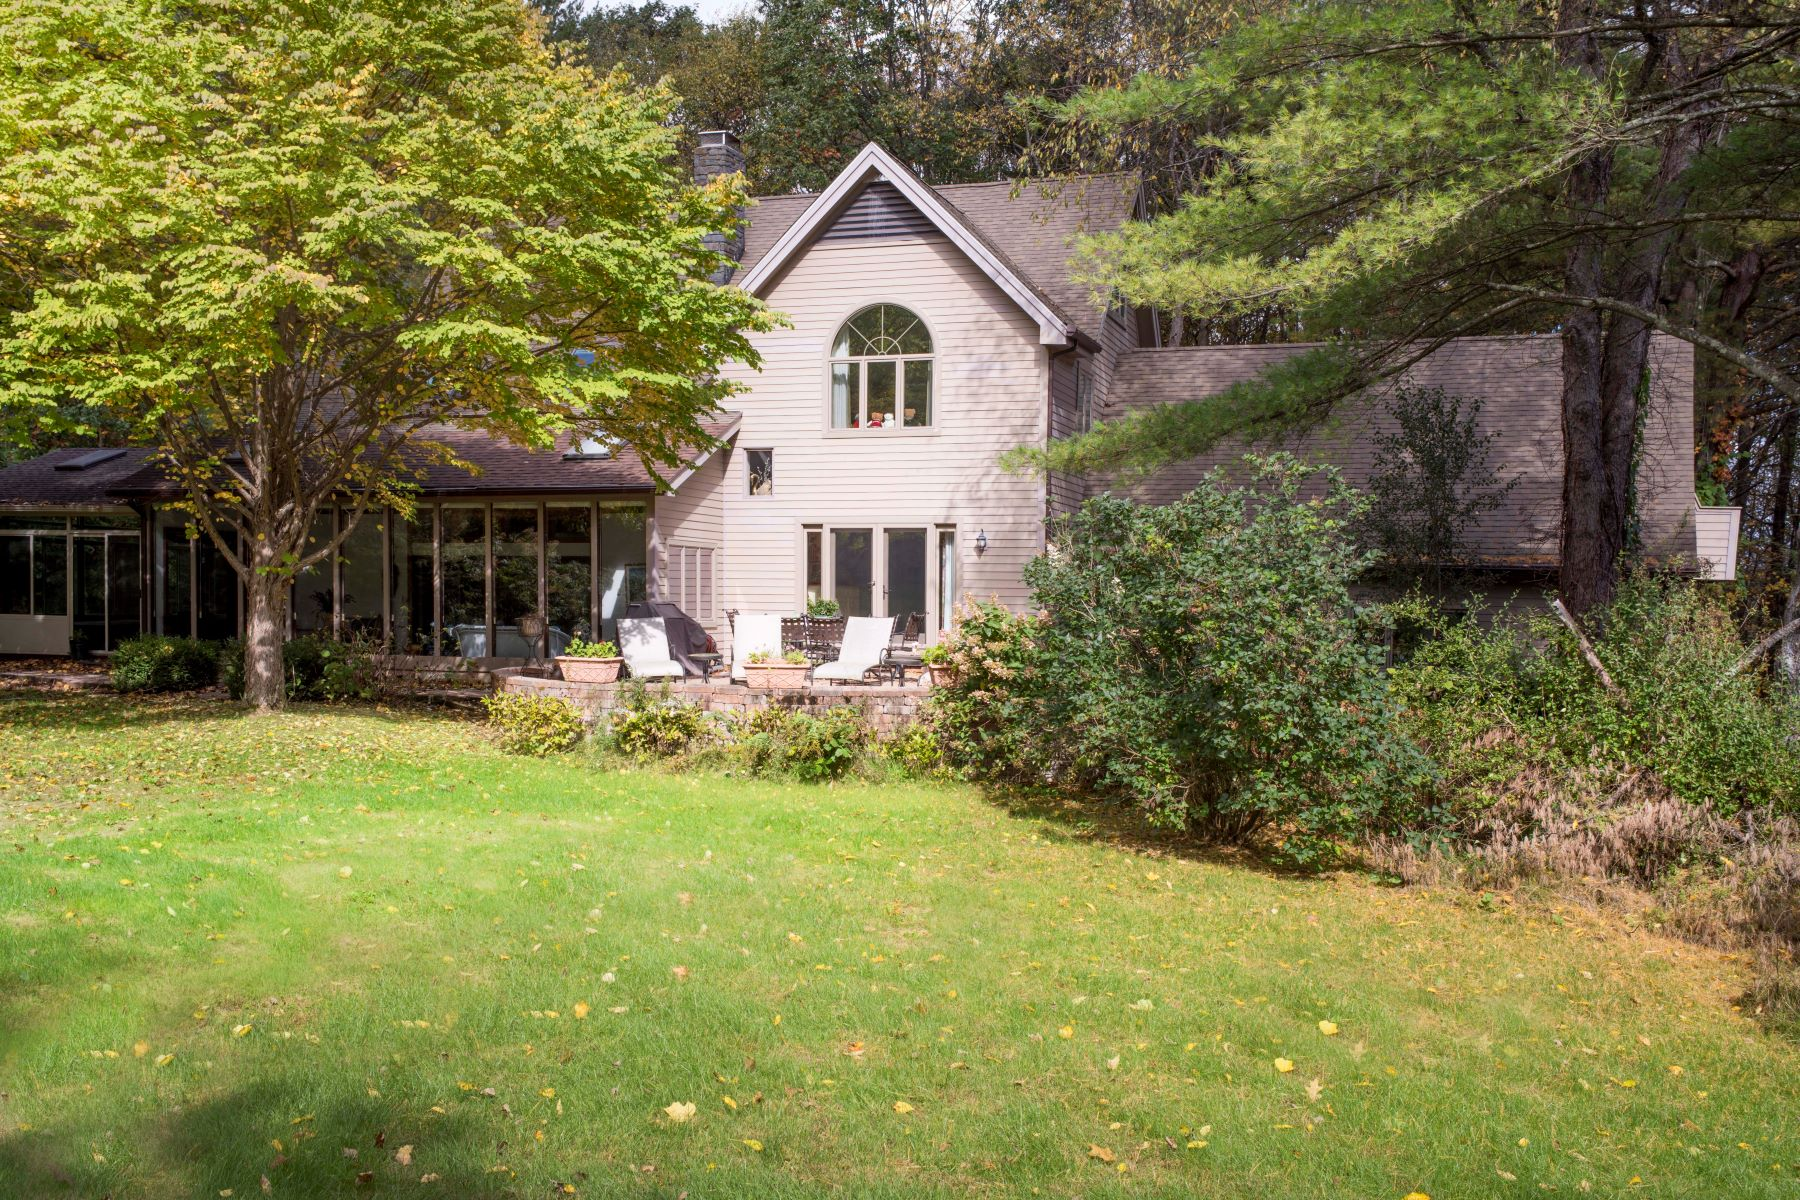 Single Family Home for Active at Bucolic Retreat Minutes From Downtown 46 West Center Rd West Stockbridge, Massachusetts 01266 United States